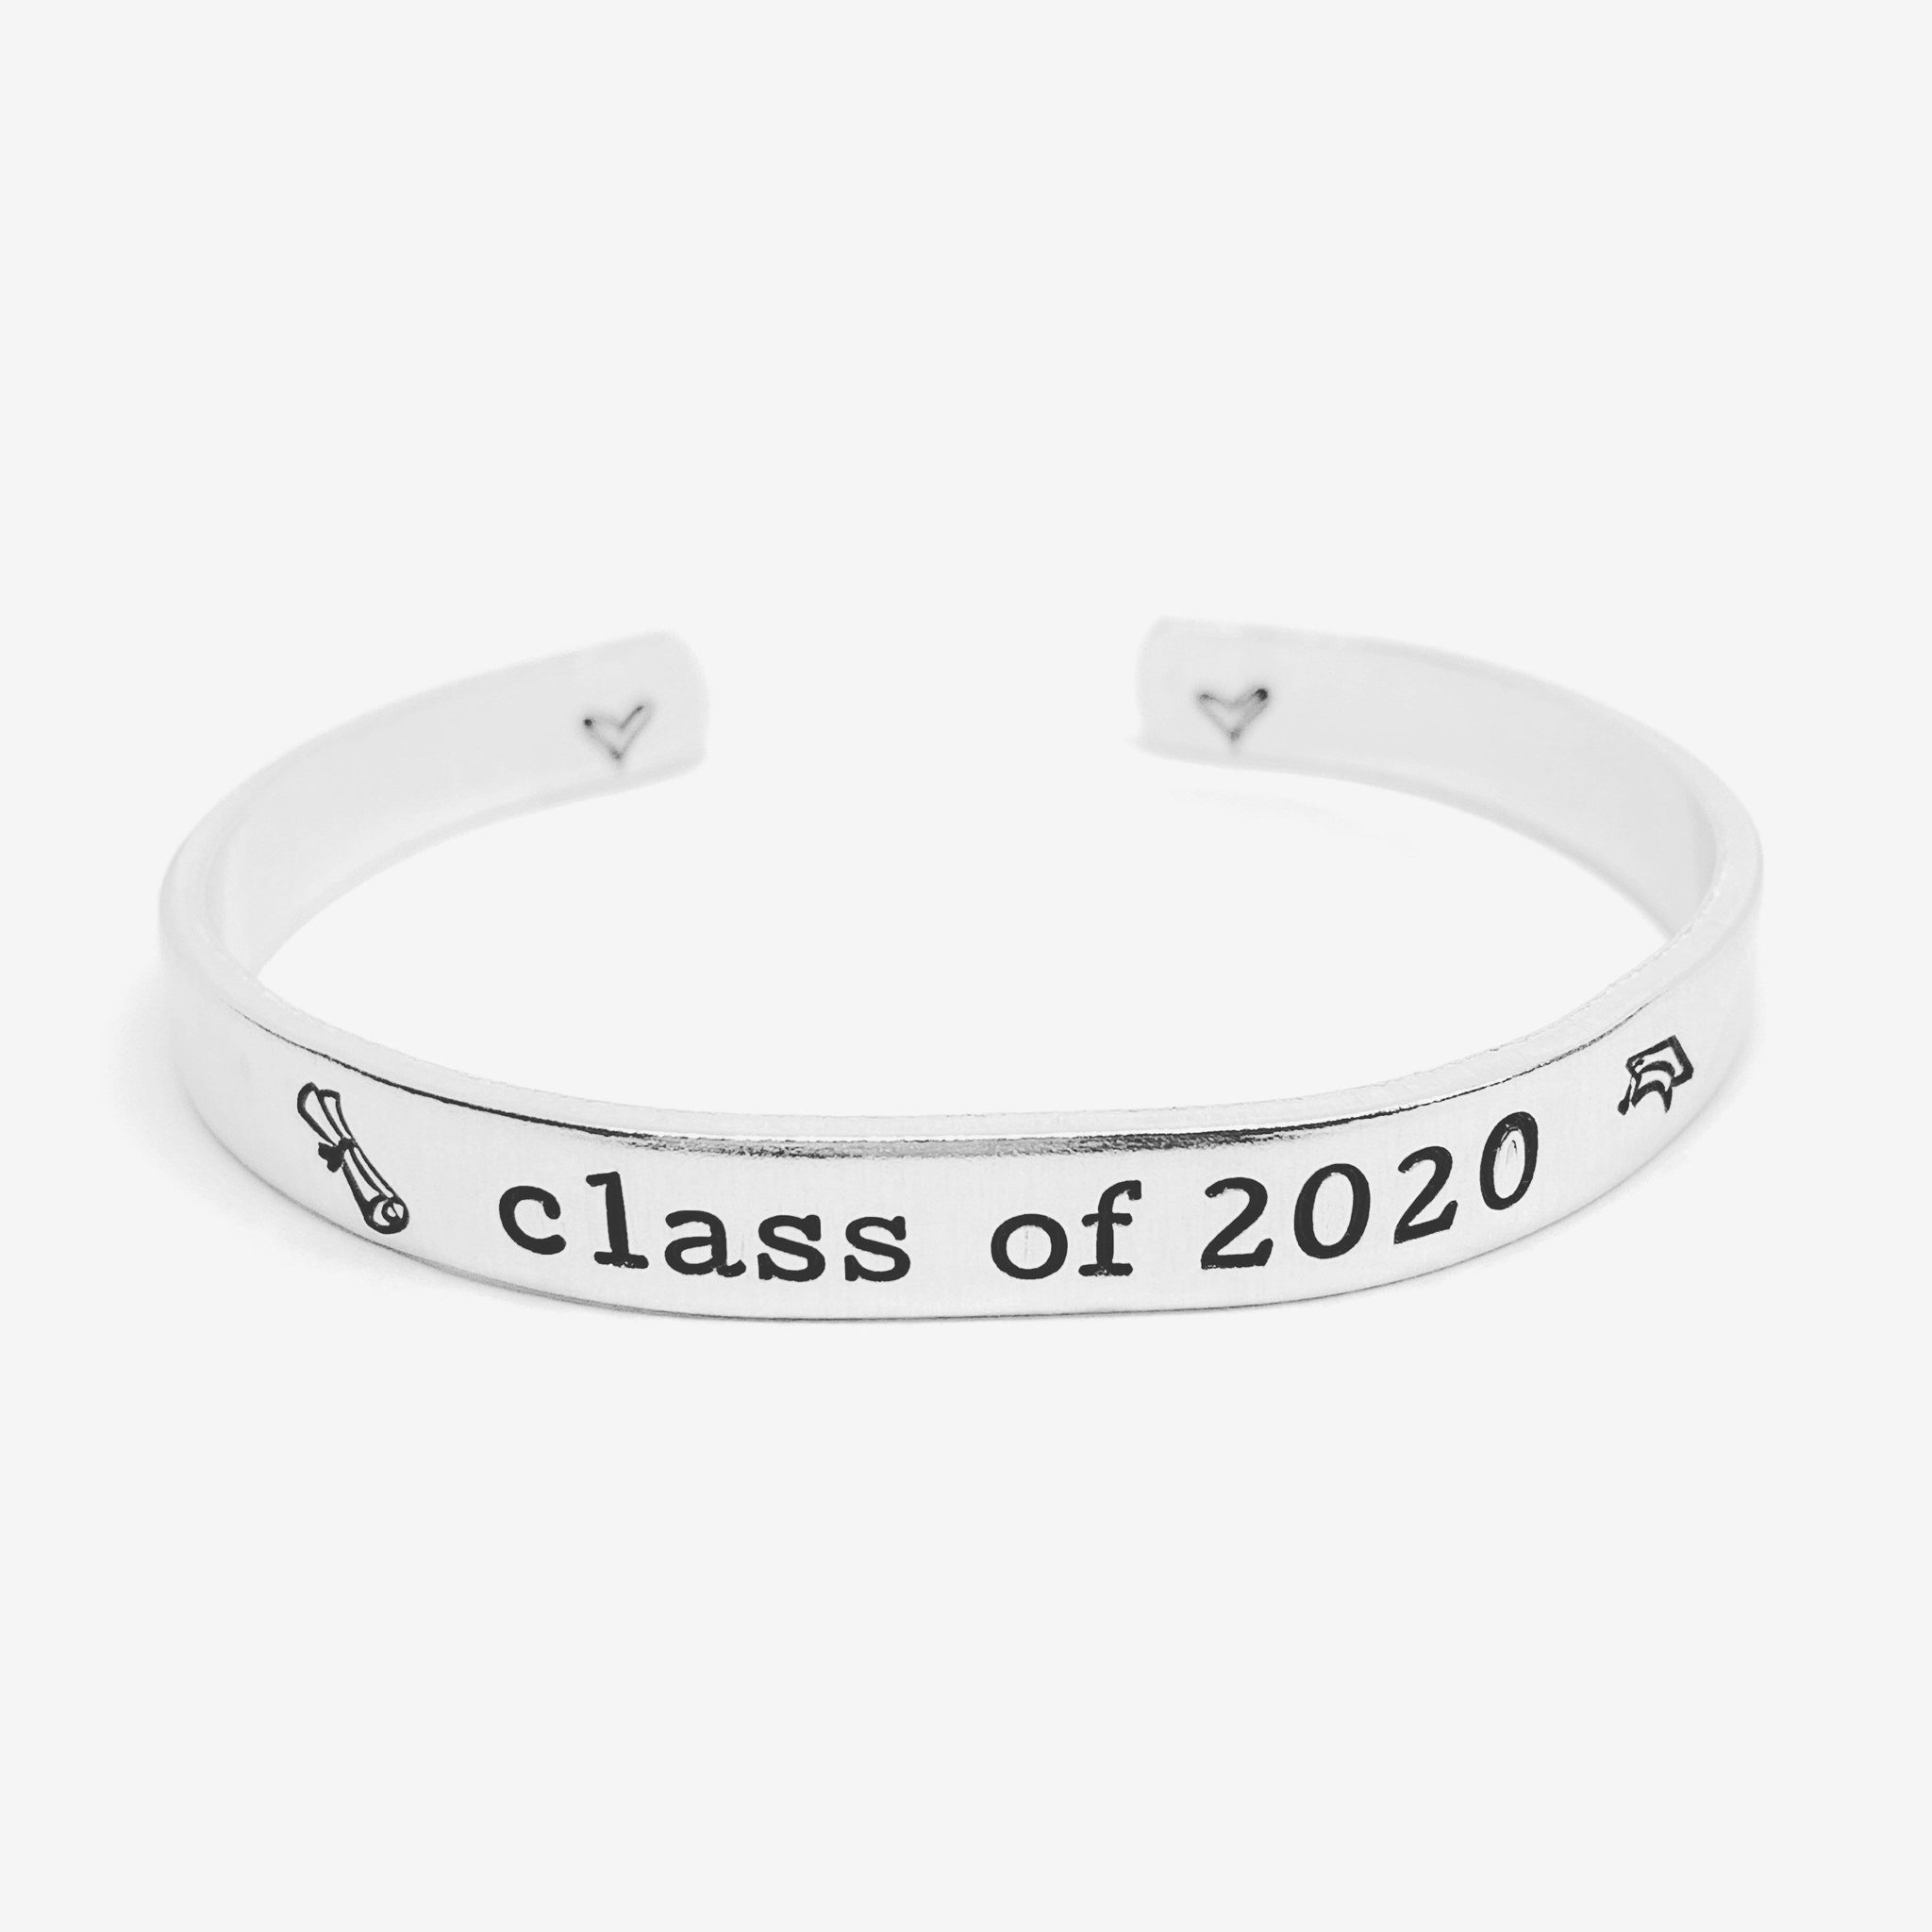 Class of 2020 - Hand Stamped Cuff Bracelet